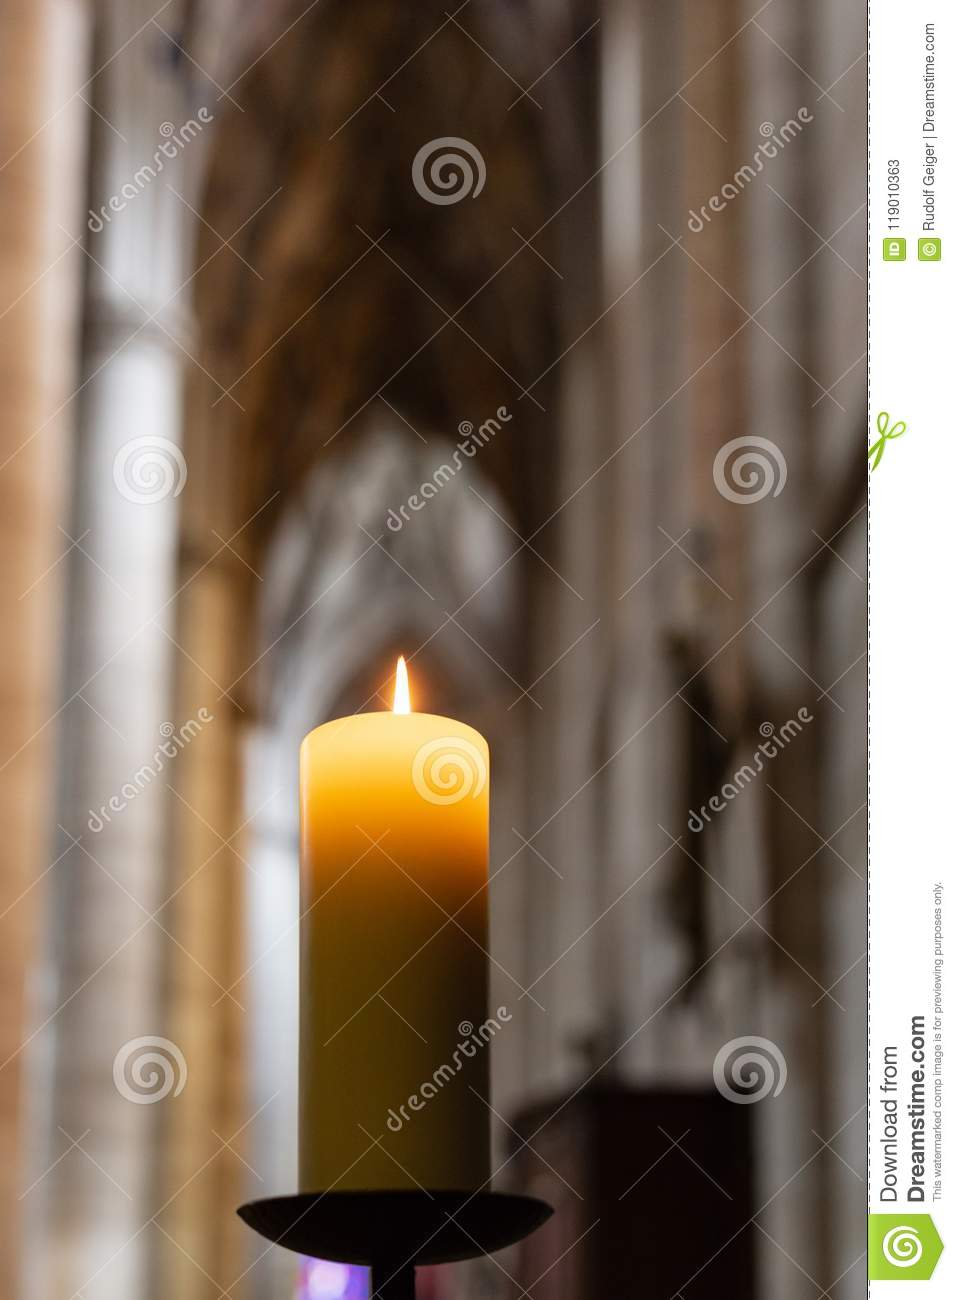 Candlelight In Church Nave Altar Stock Image - Image of flame, love